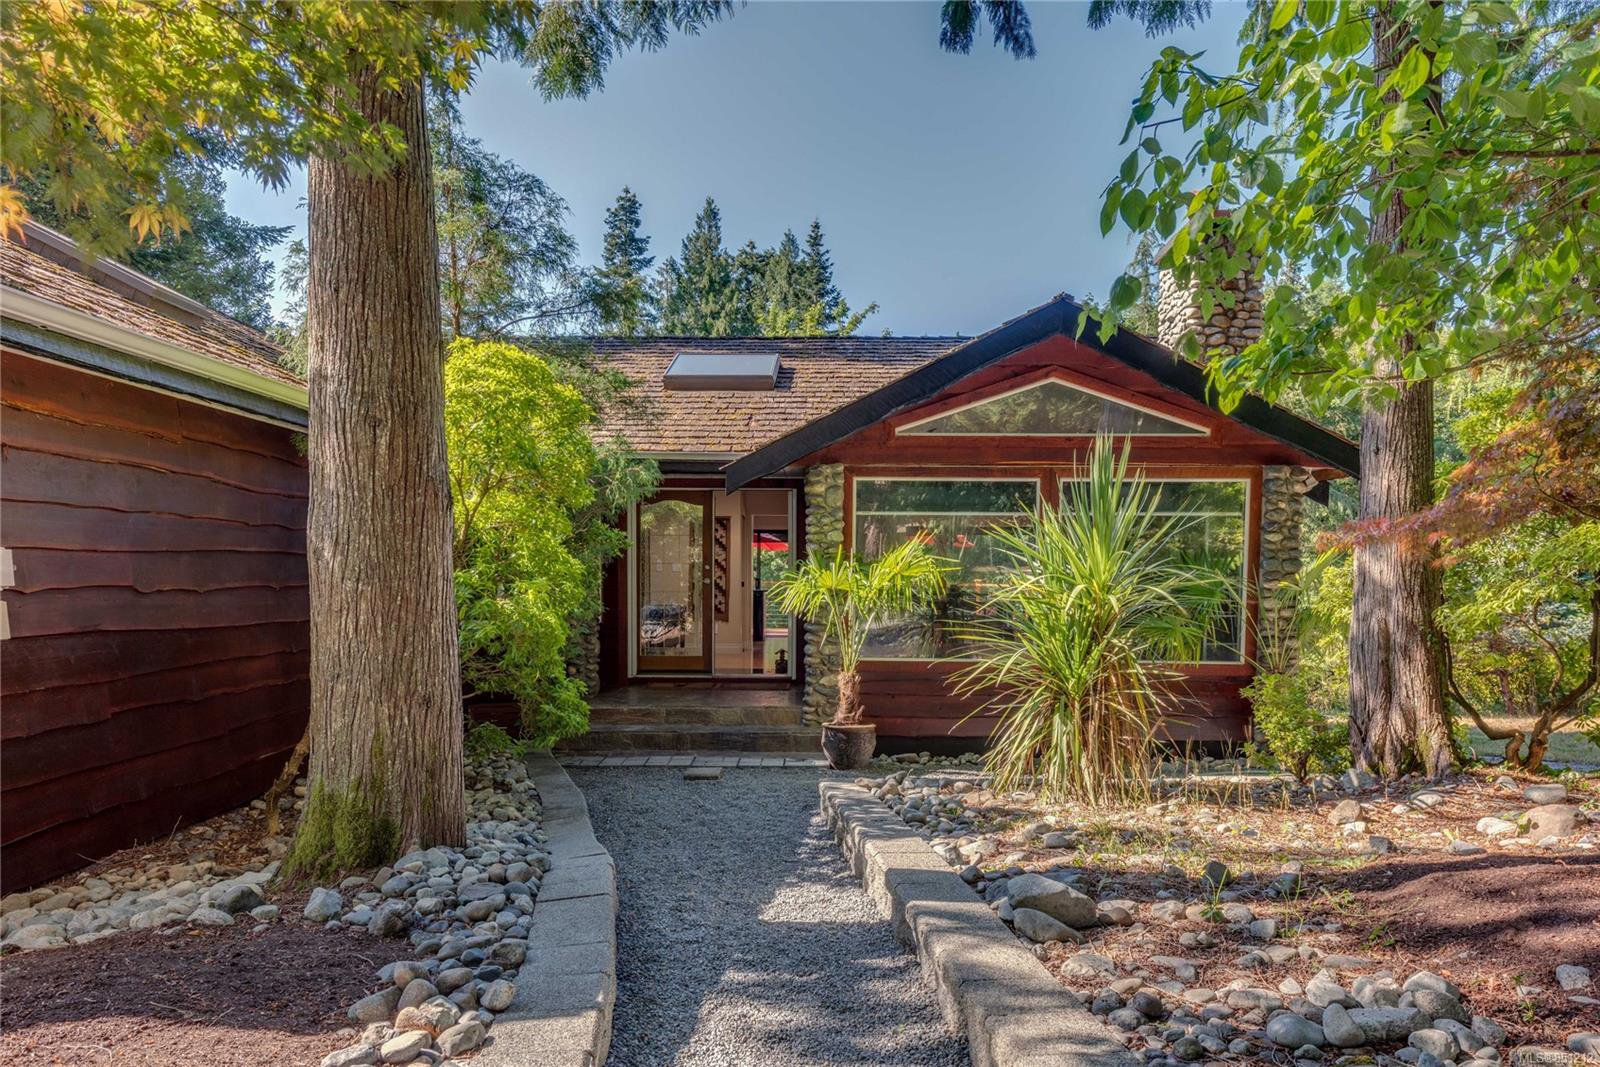 Main Photo: 471 Green Mountain Rd in : SW Prospect Lake Single Family Detached for sale (Saanich West)  : MLS®# 851212